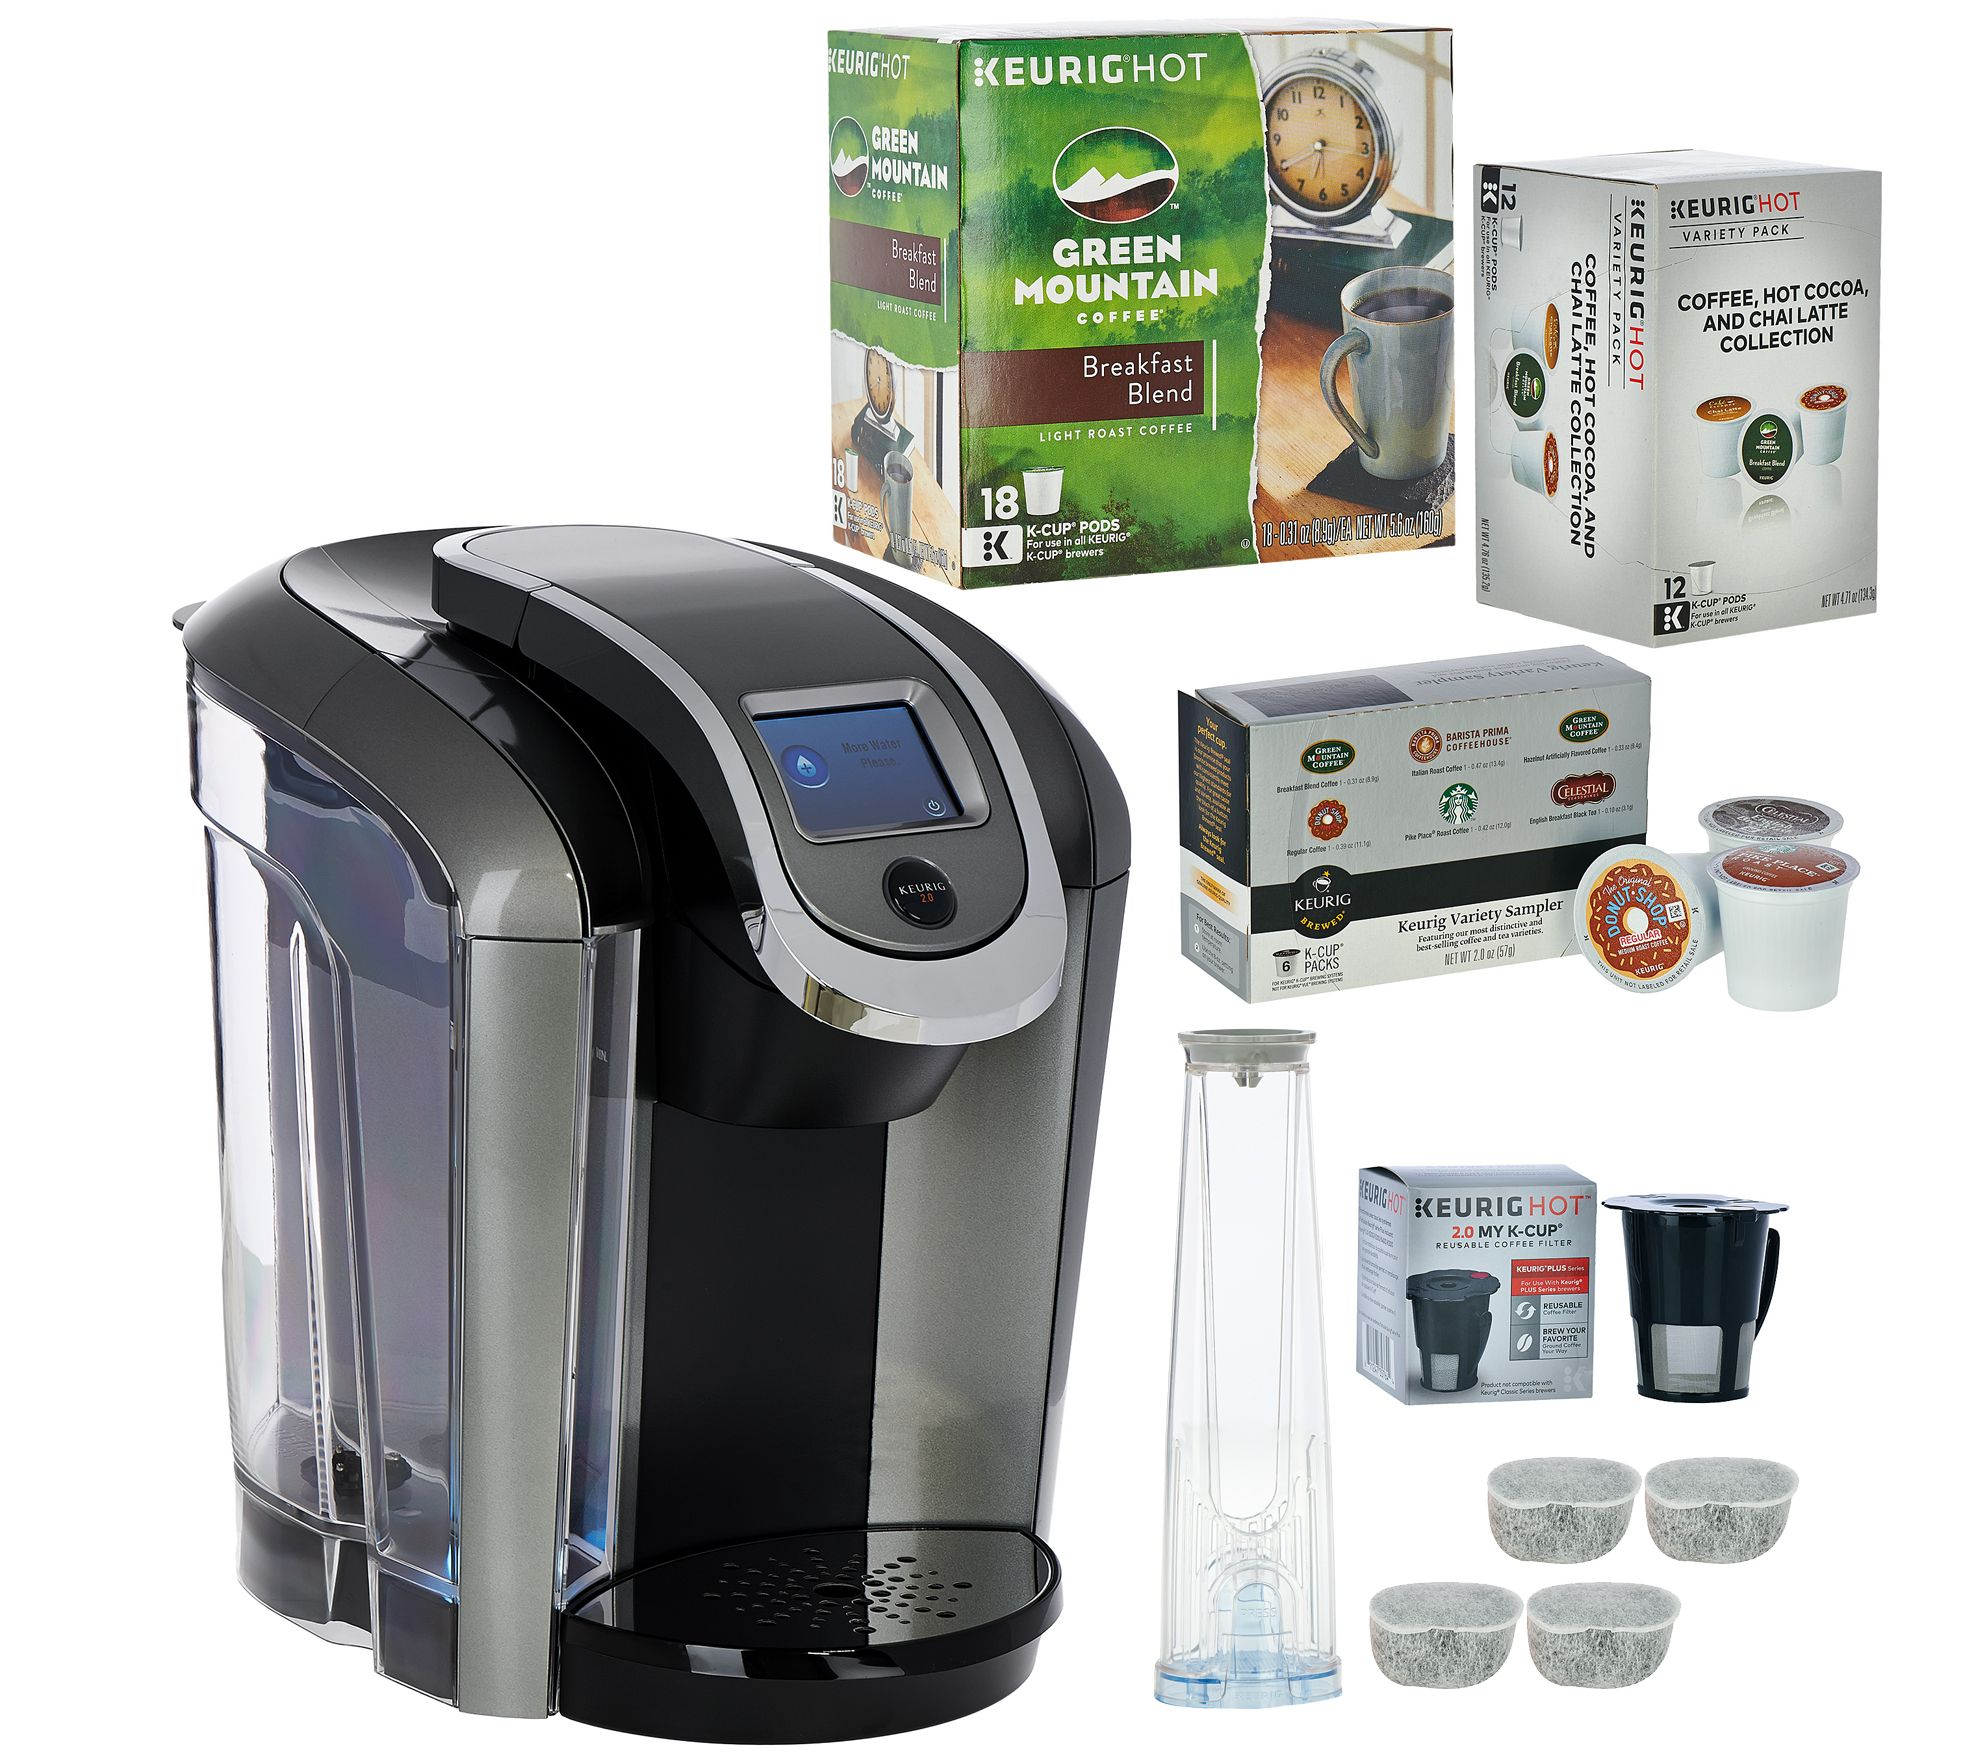 Coffee Maker That Uses Pods And K Cups : Keurig 2.0 K575 Coffee Maker w/ My K-Cup & 36 K-Cup Pods - Page 1 QVC.com